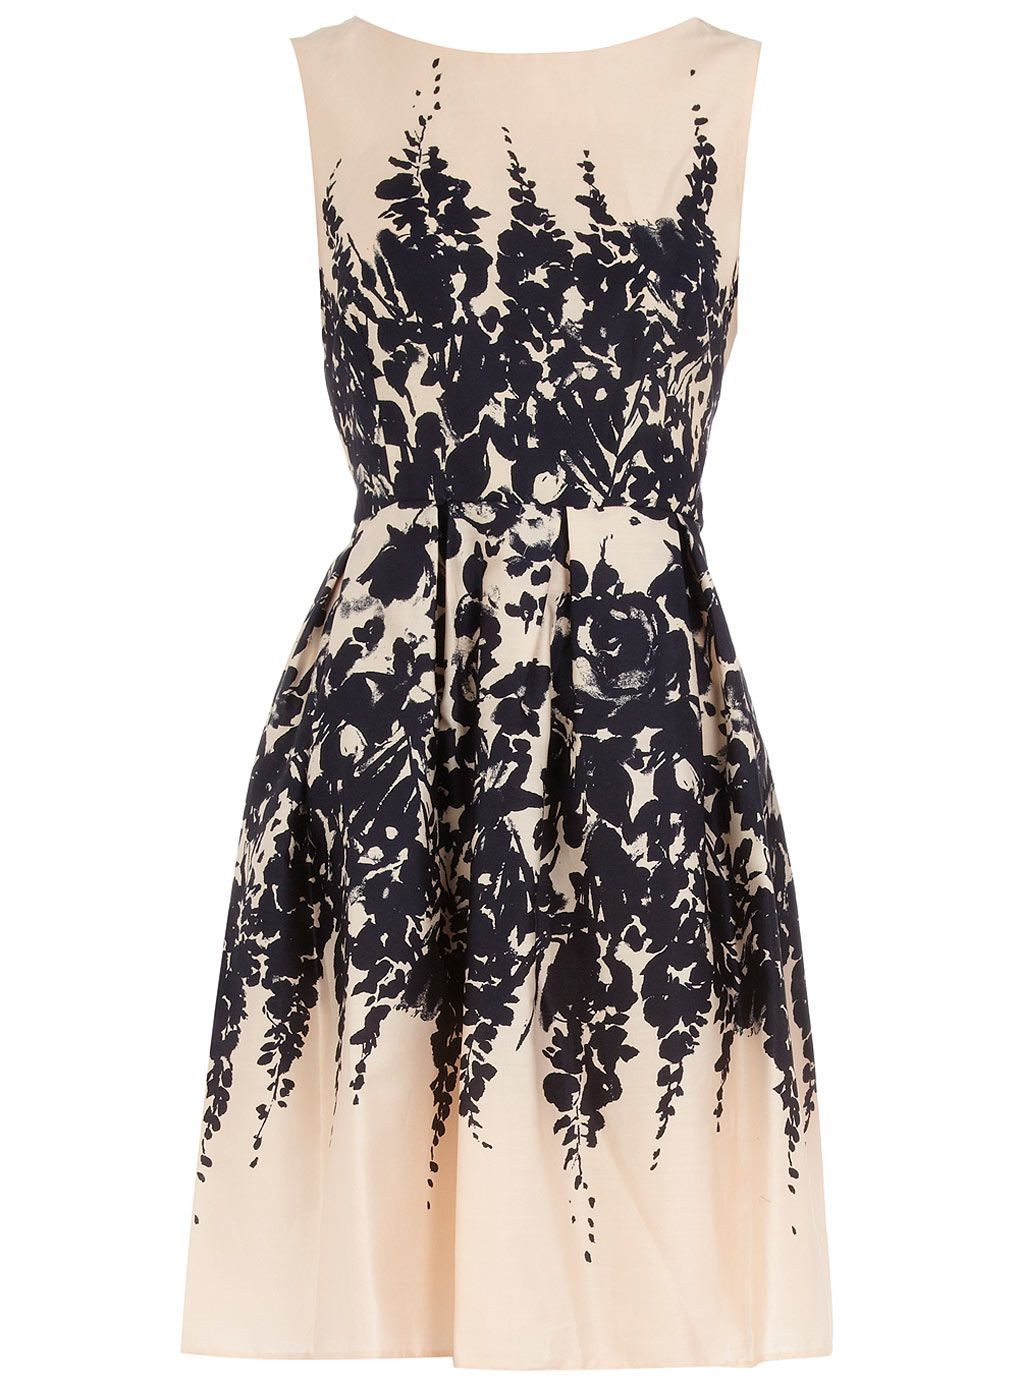 Dorothy Perkins Nude floral border prom dress $69.00